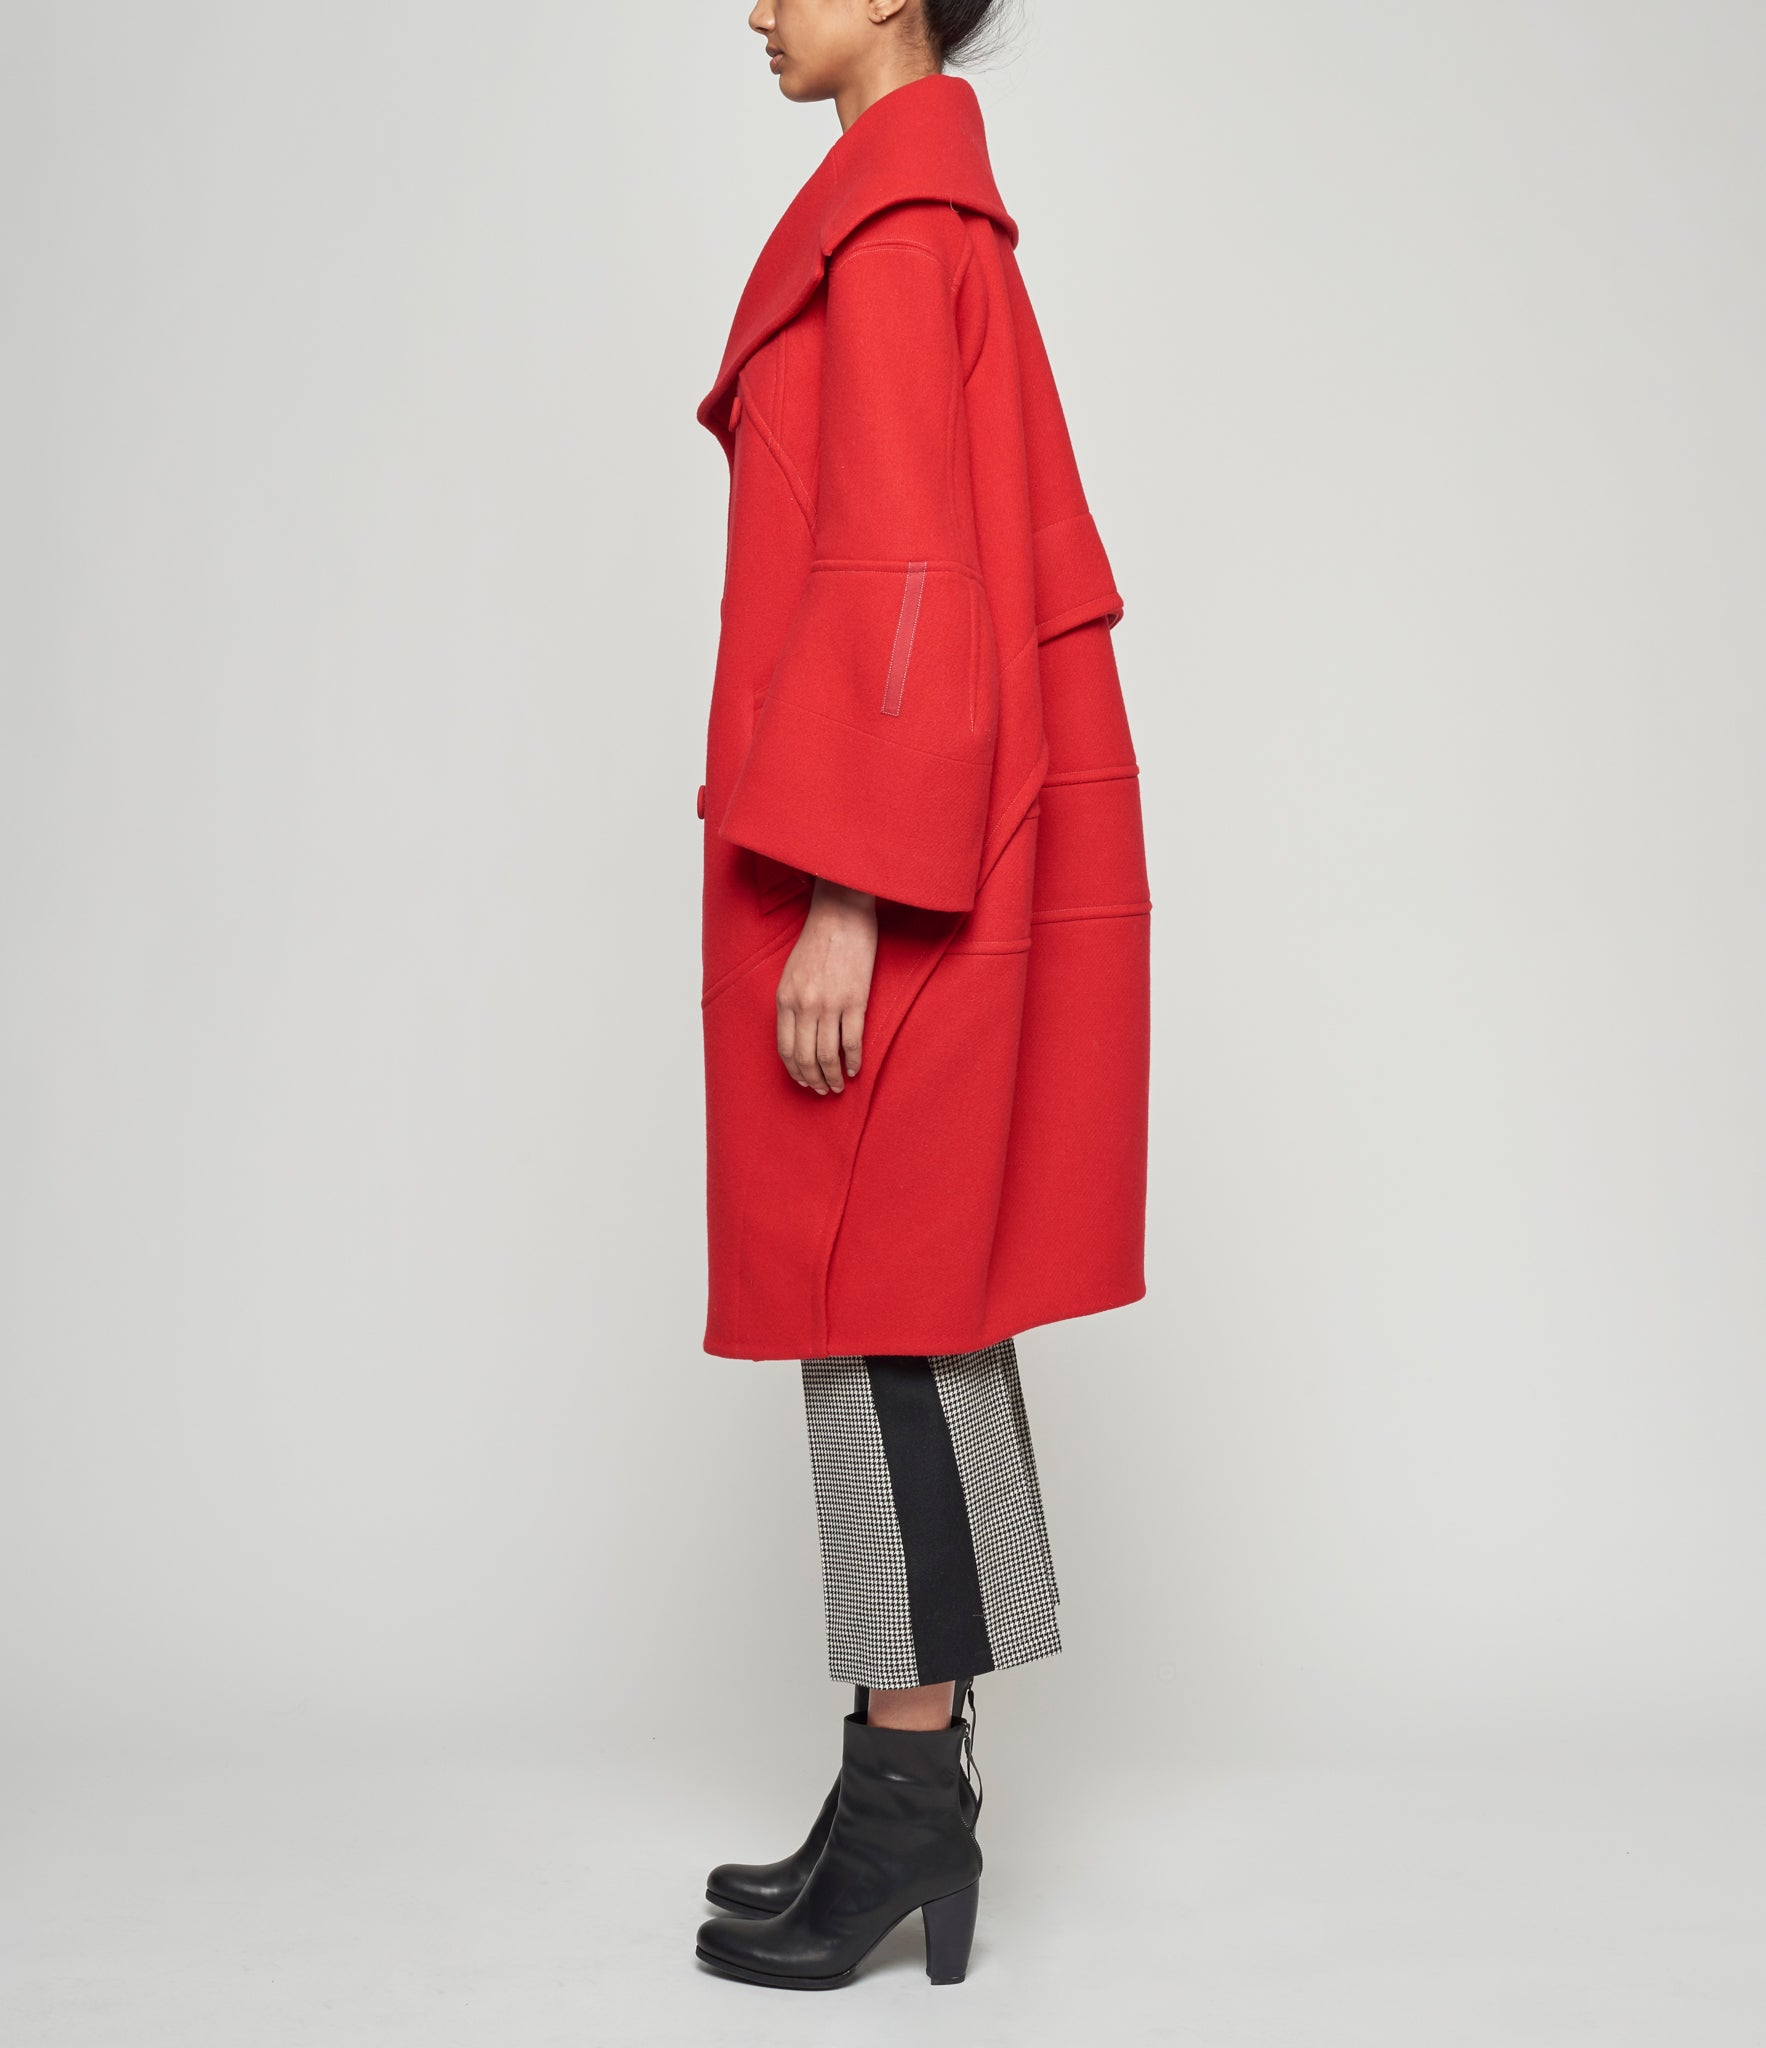 Shiro Sakai Red Double Breasted Portrait Collar Coat